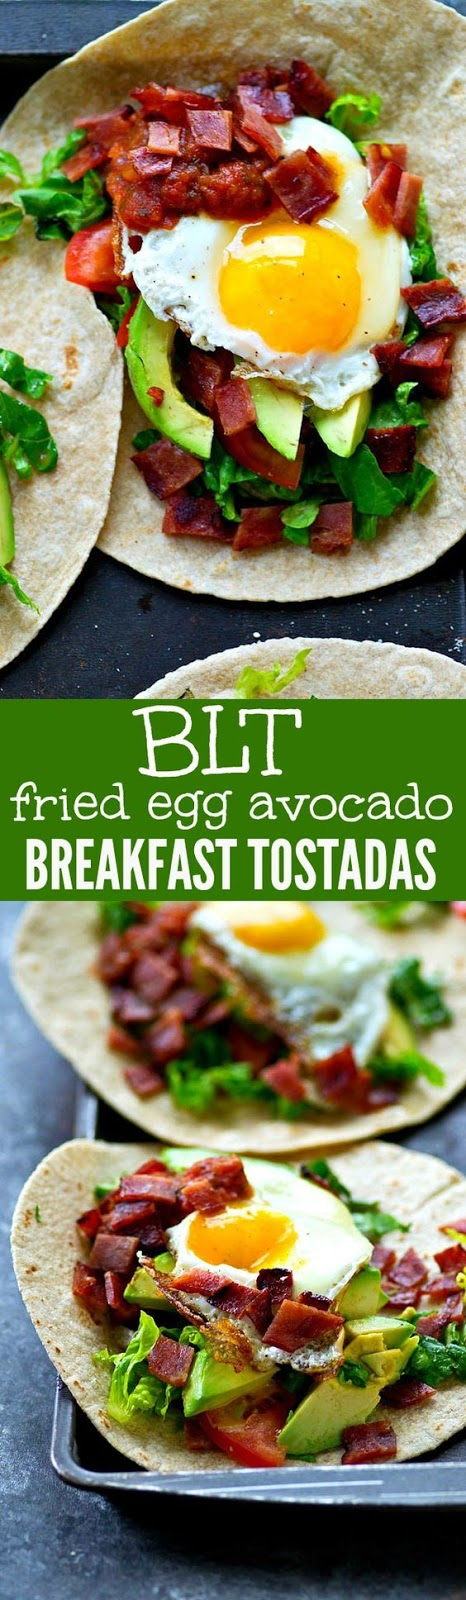 BLT FRIED EGG AVOCADO BREAKFAST TOSTADAS